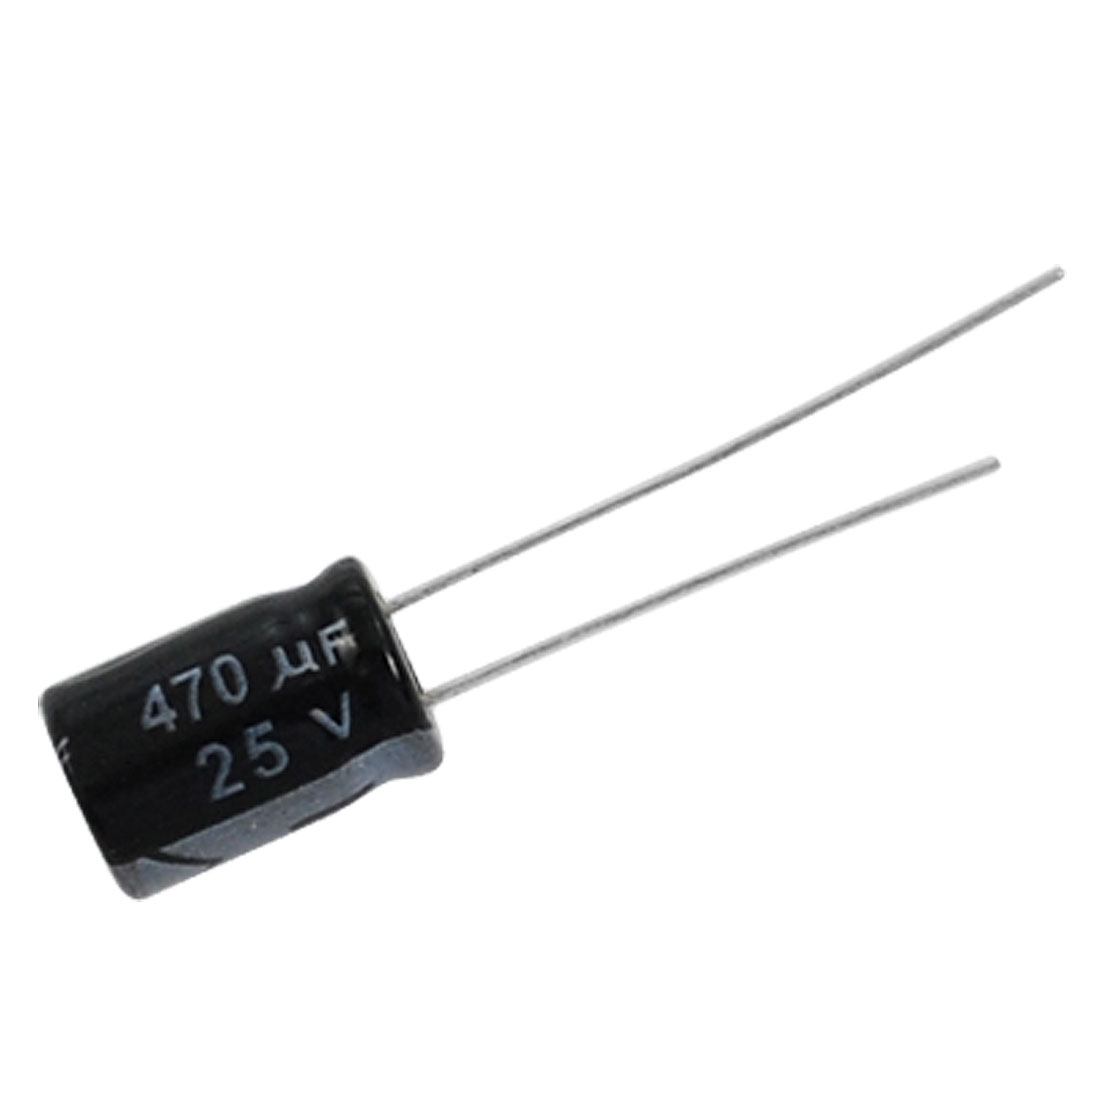 100 Pcs 8x12mm 470uF 25V Aluminum Electrolytic Capacitors